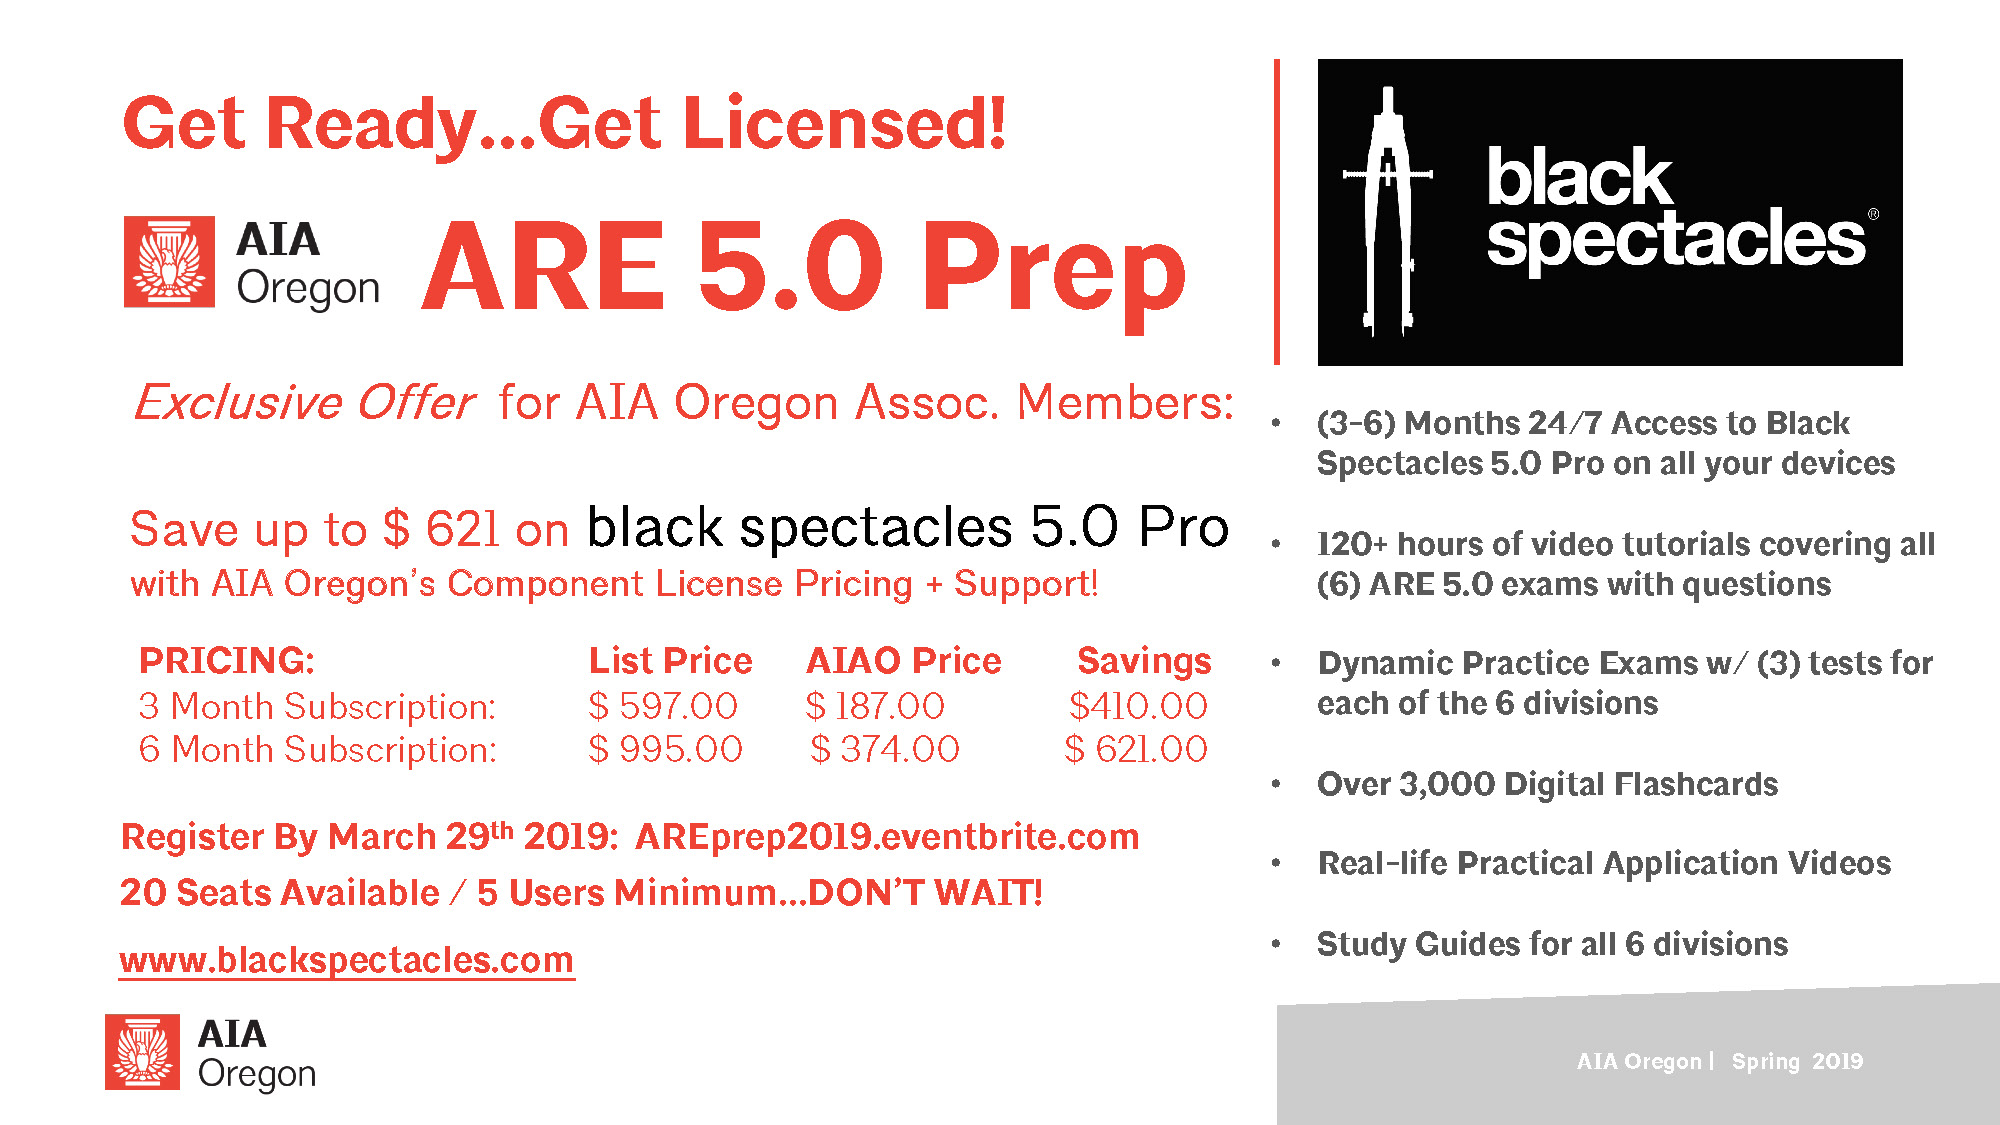 AIAOR_ARE 2019 Program Offer.jpg